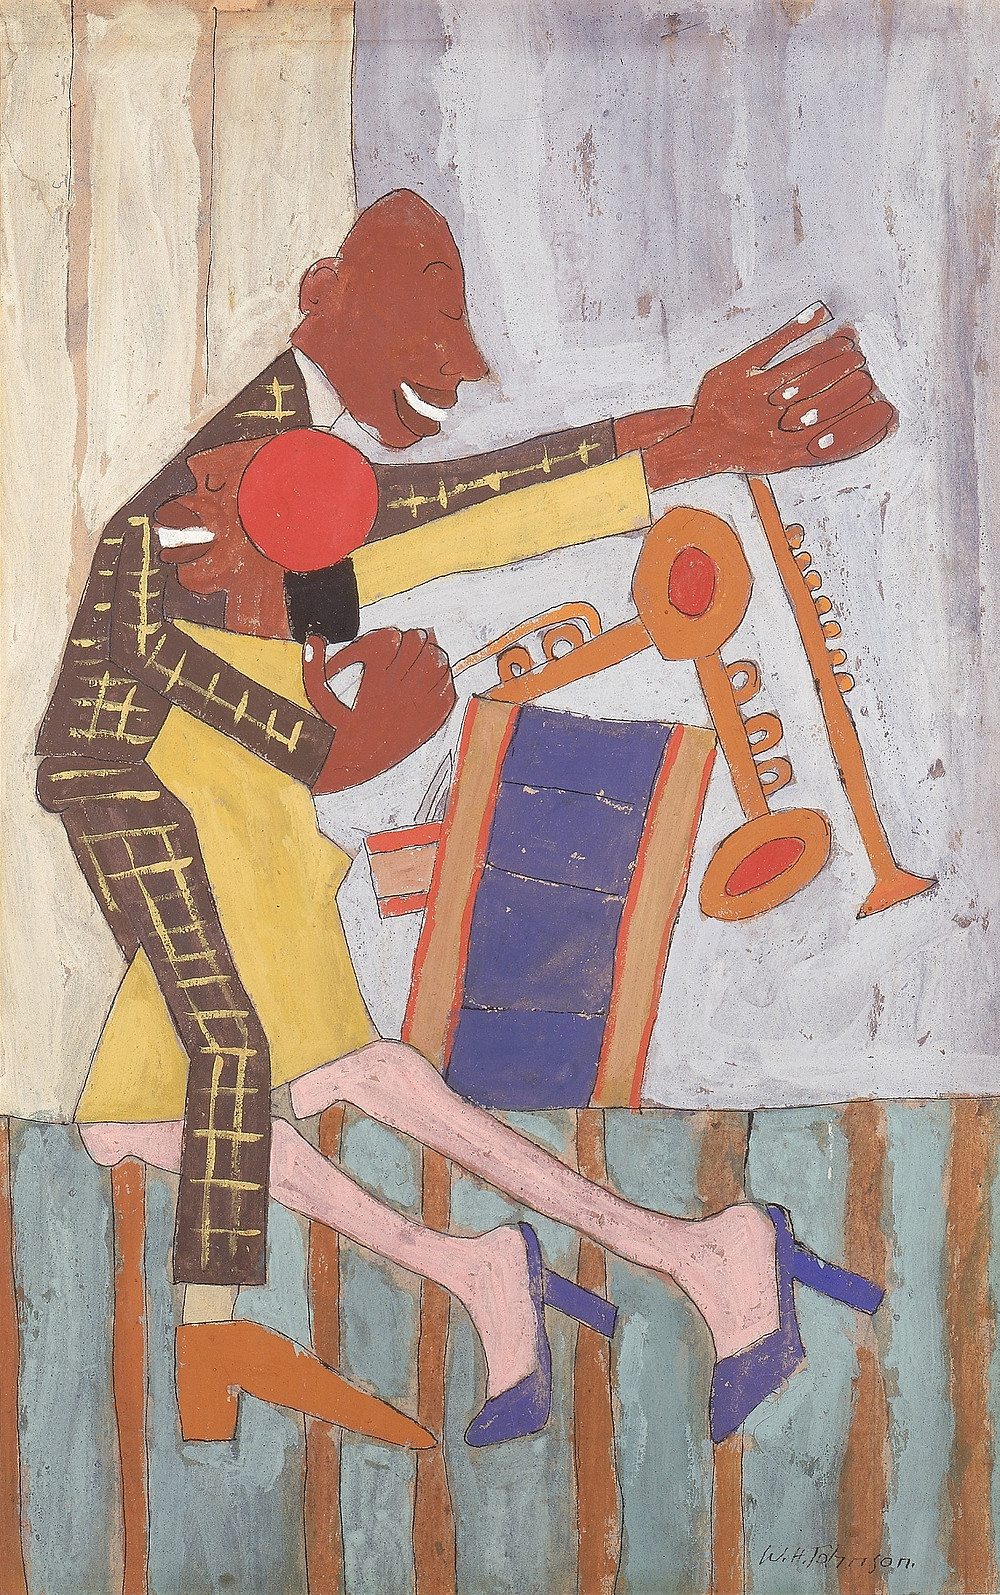 William H. Johnson, Jitterbugs (II), ca. 1941, gouache and pen and ink with pencil on paper, Smithsonian American Art Museum, Gift of the Harmon Foundation, 1967.59.1047R-V